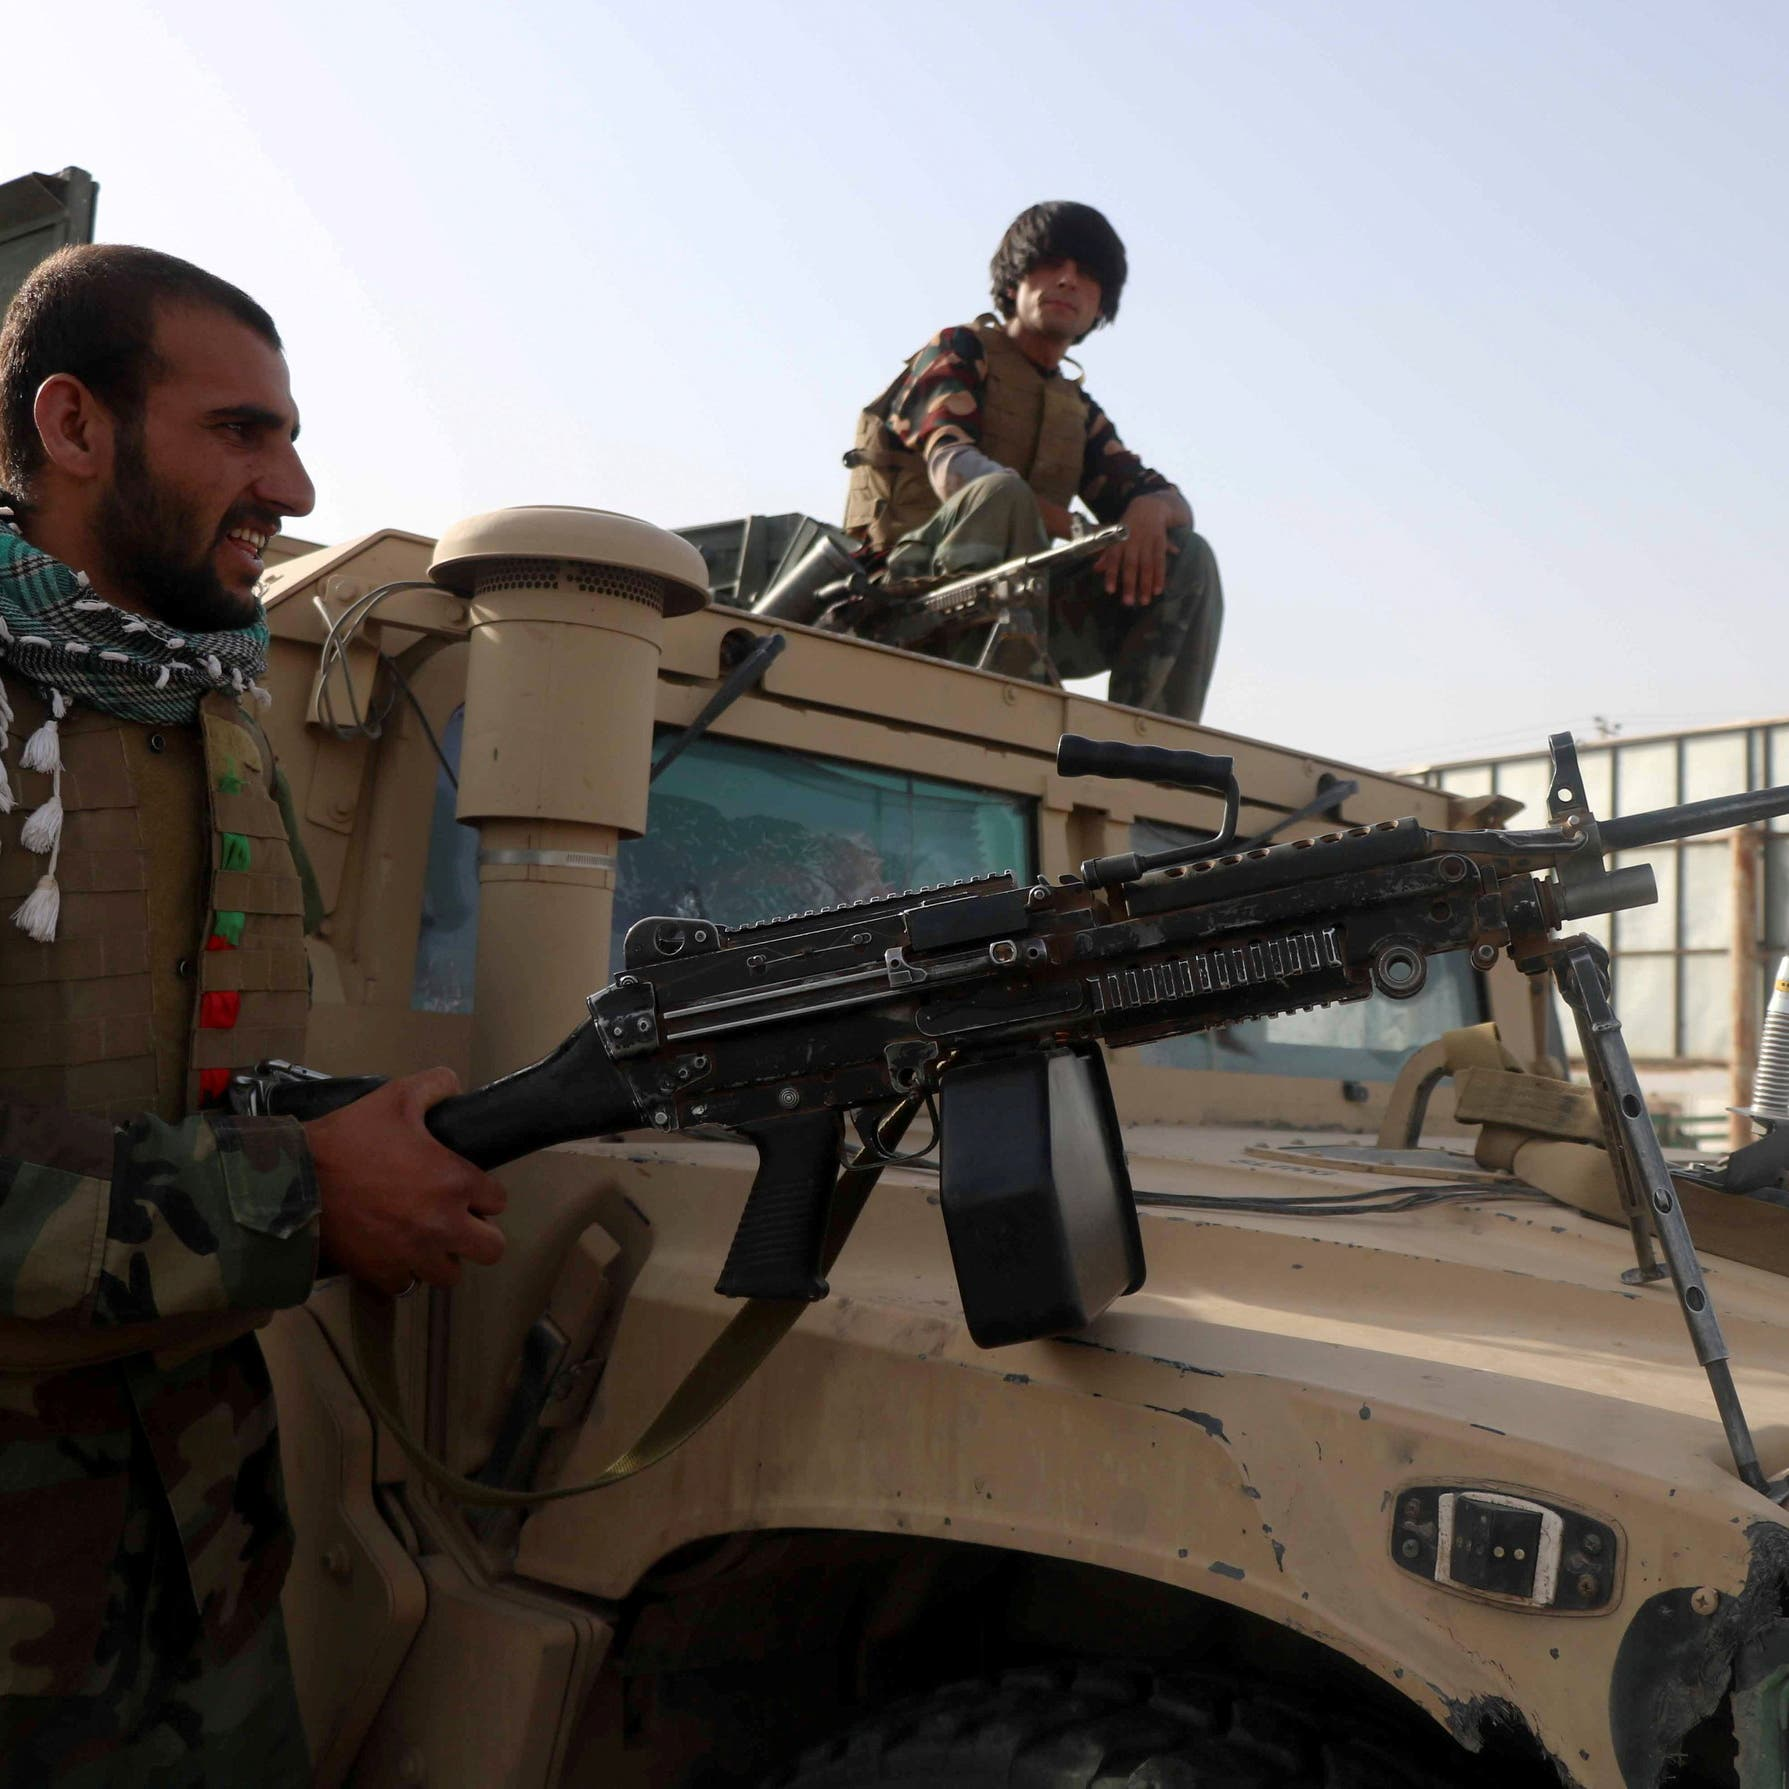 Explainer: How did the Afghan military collapse so quickly amid Taliban takeover?